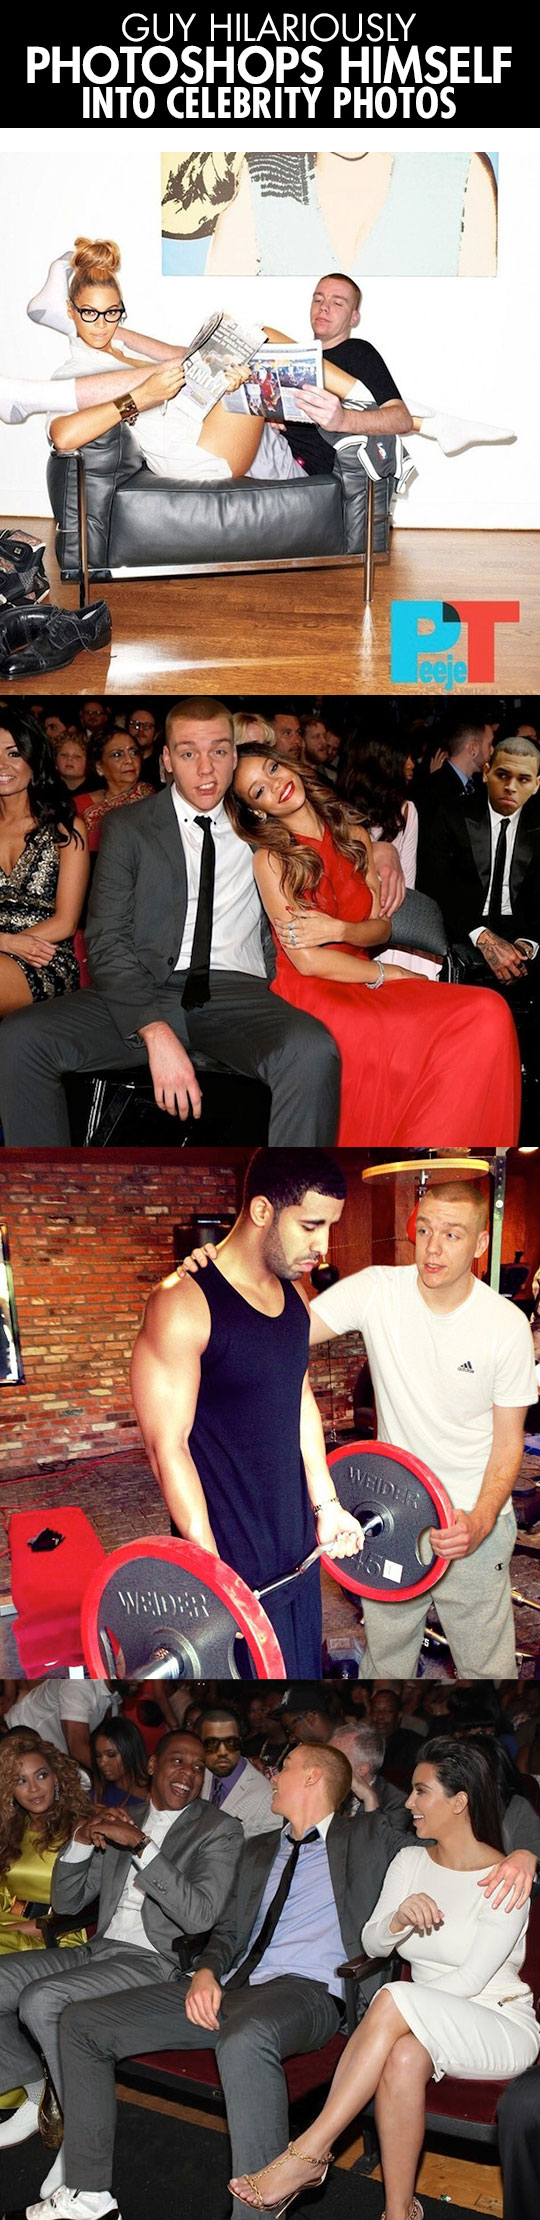 Guy photoshops himself into celebrity photos...